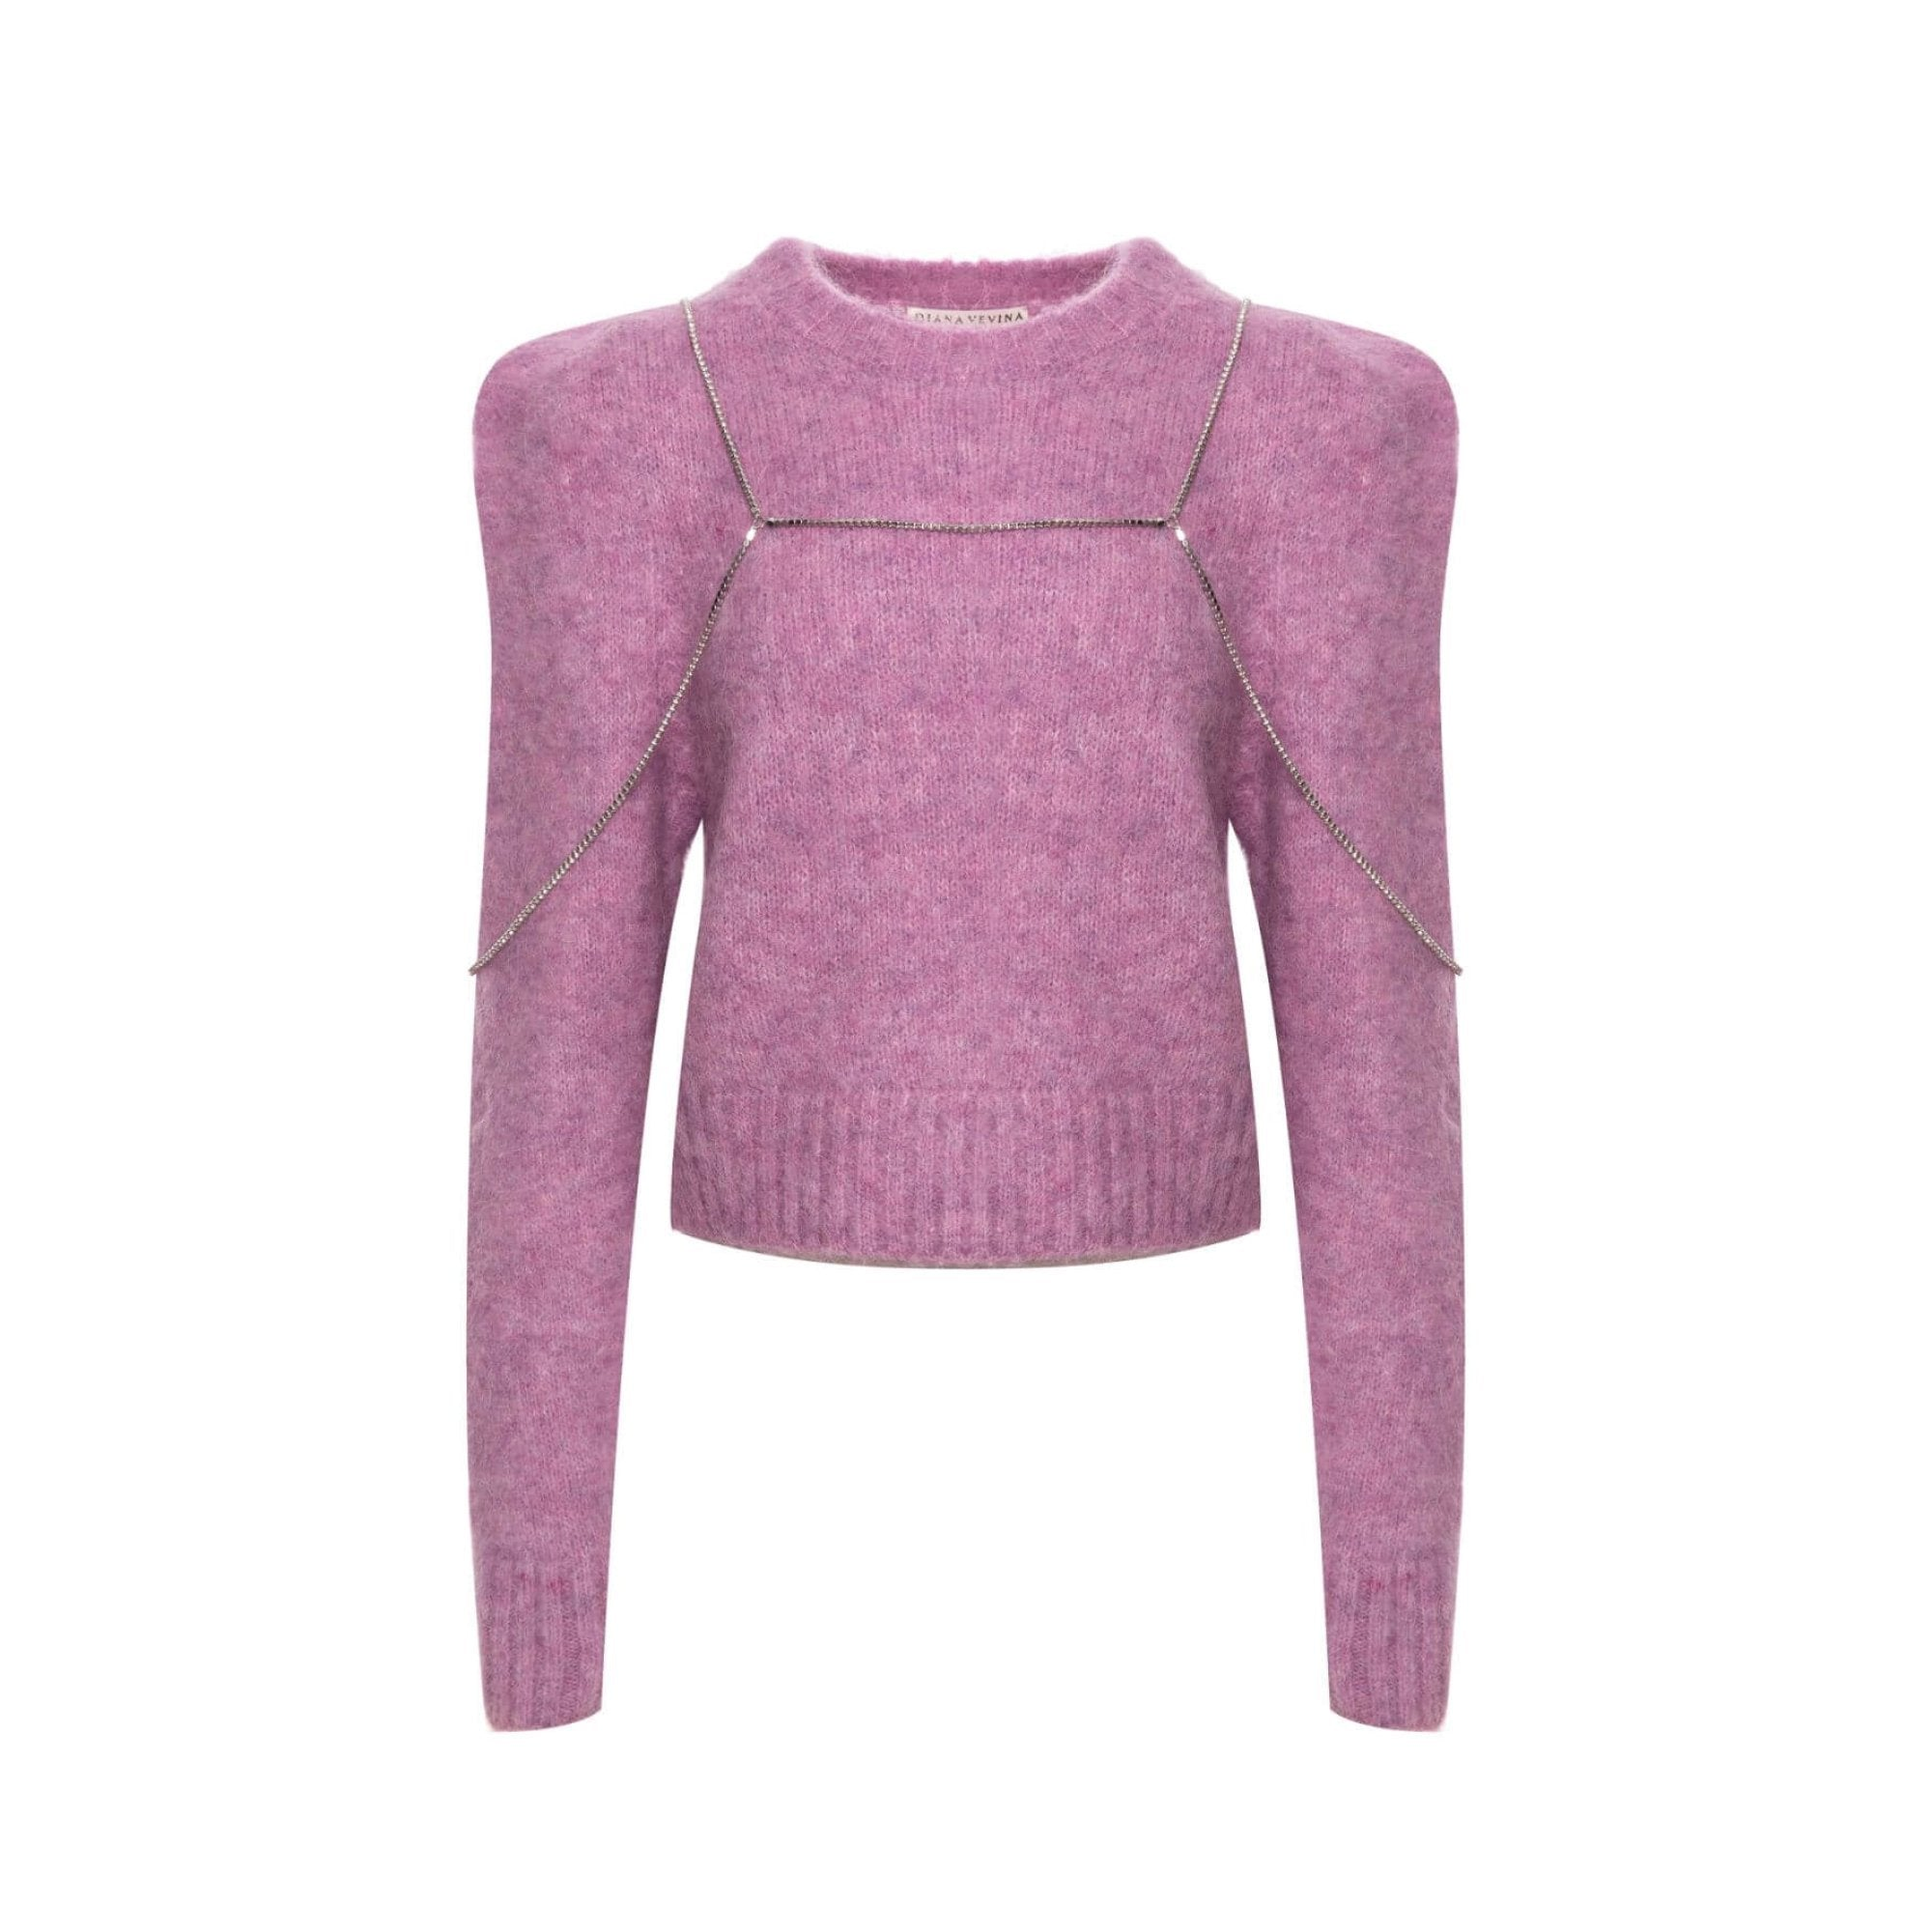 DIANA VEVINA Purple Chain Sweatshirt | MADA IN CHINA